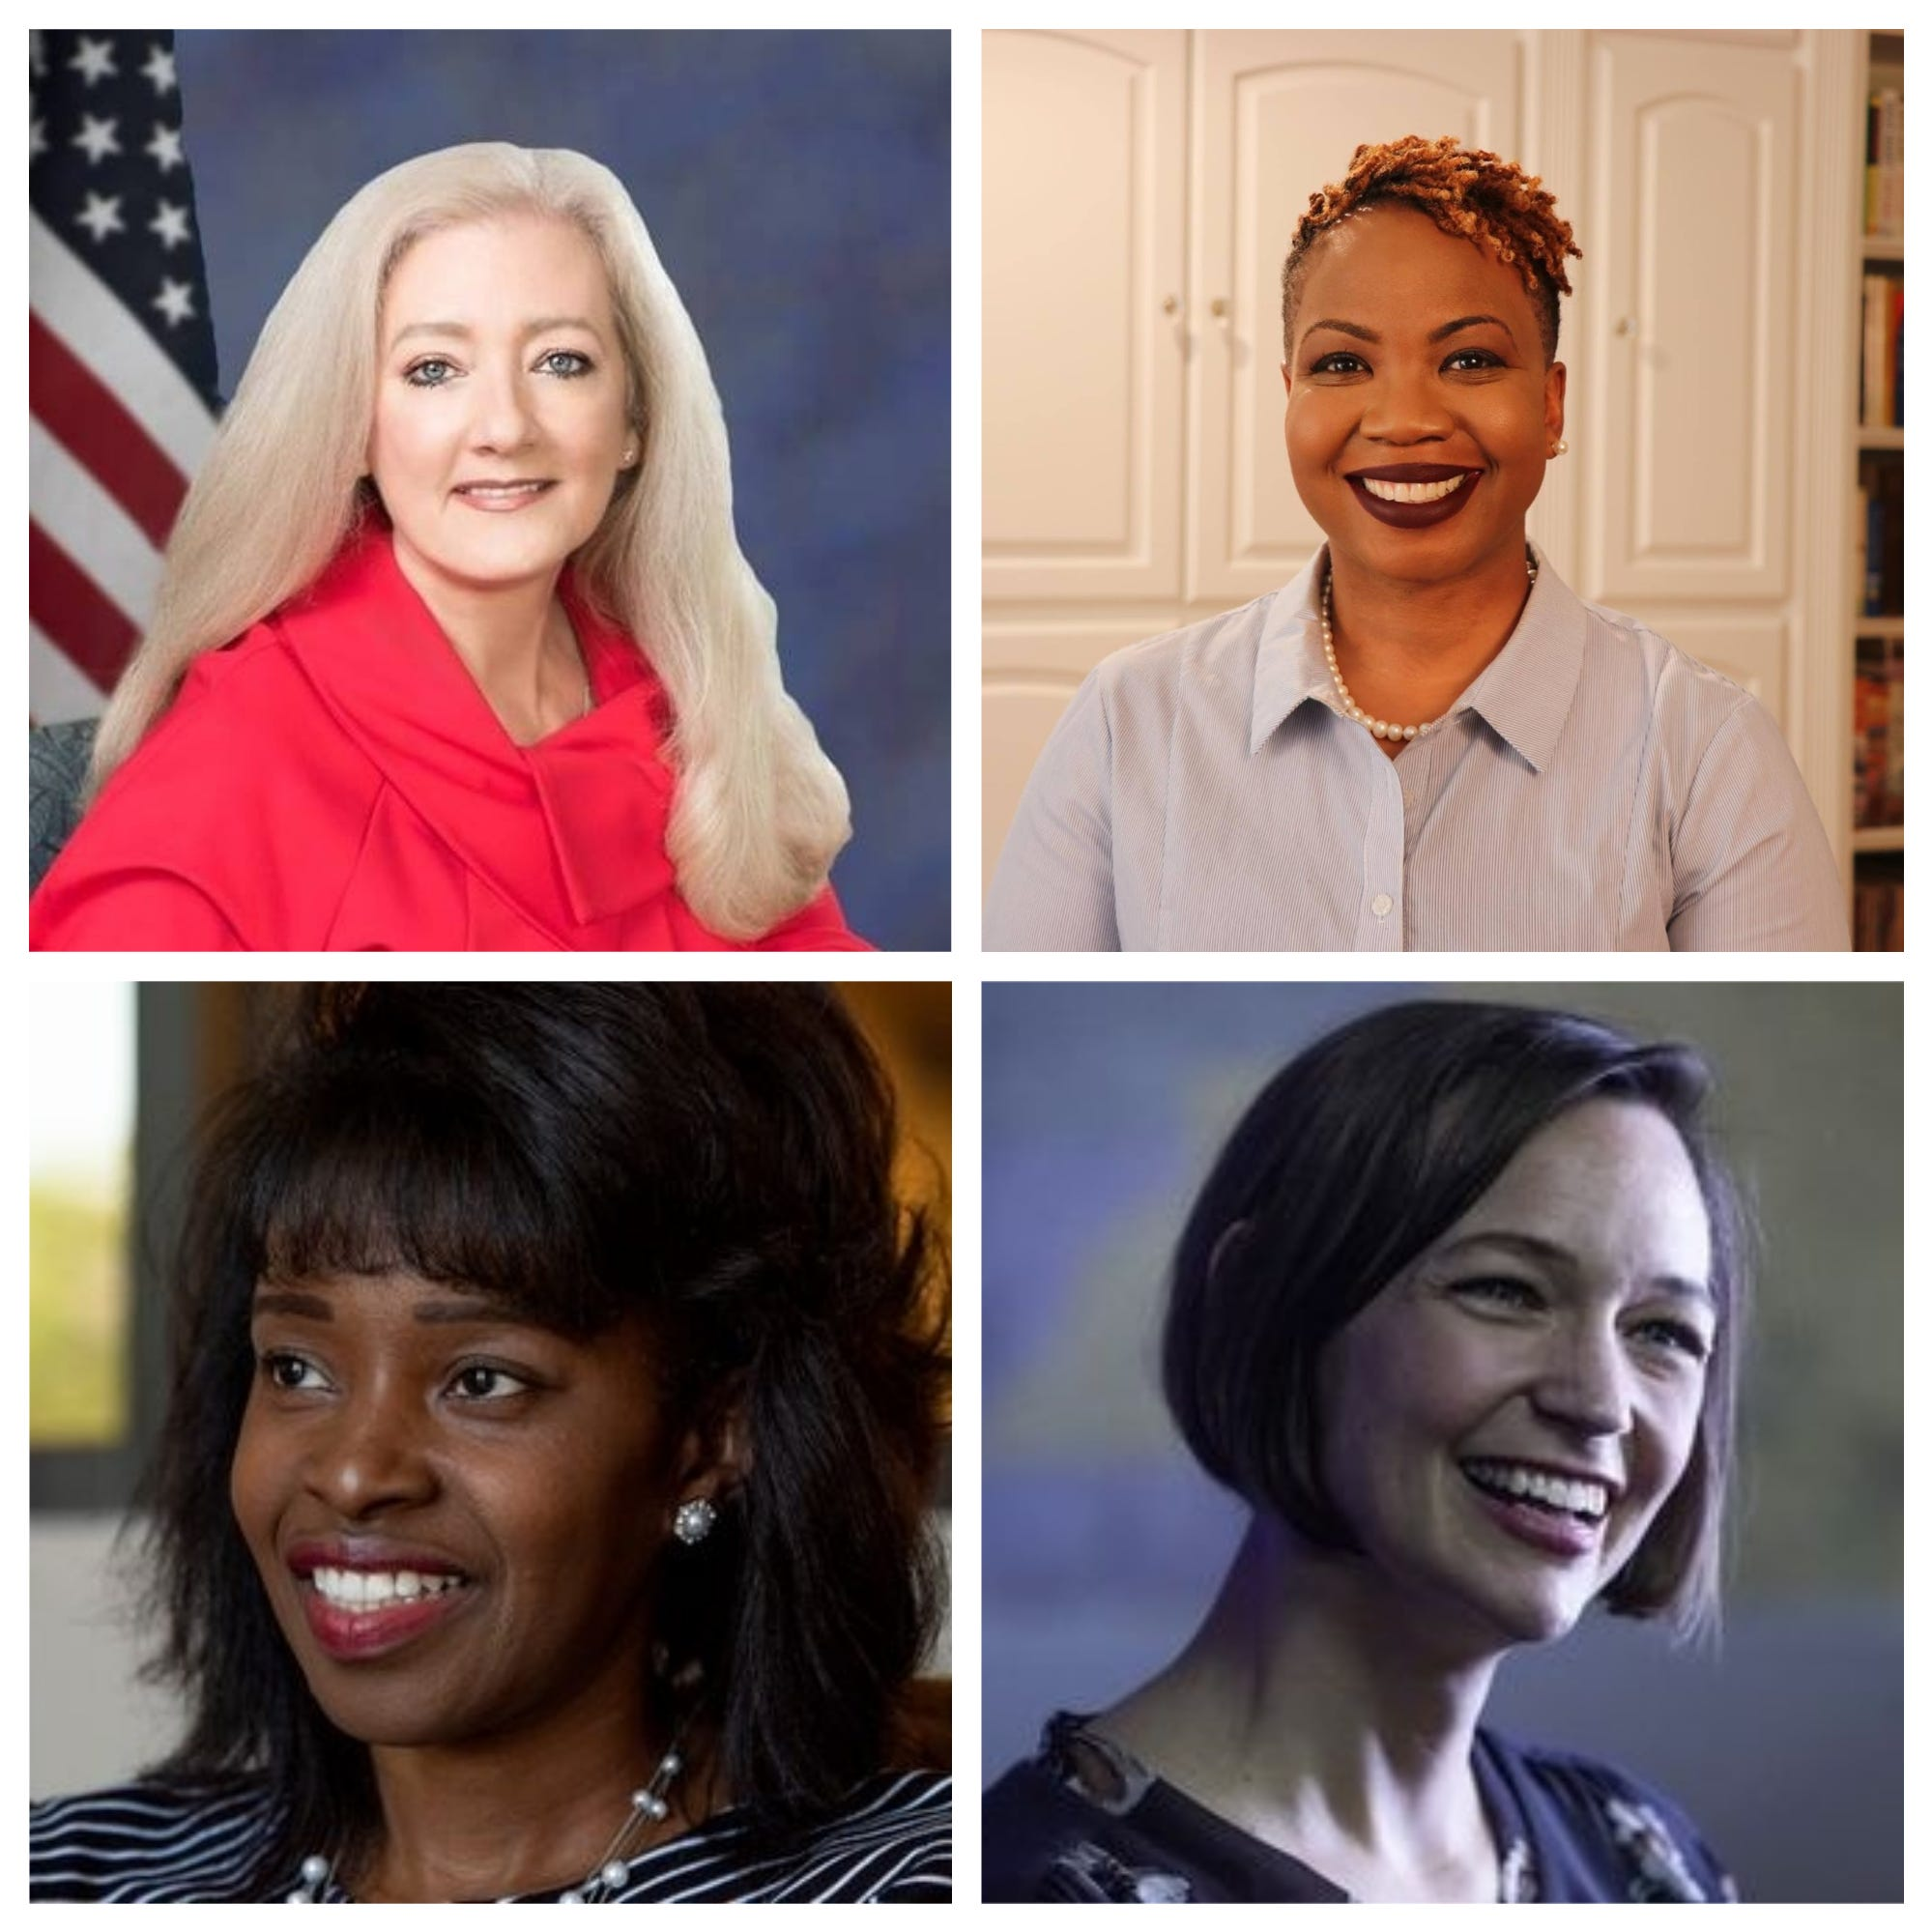 Clockwise from top left: Republican Ginny Shaver, Democrat Veronica Johnson, independent candidate Tijuanna Adetunji, Democrat Tabitha Isner.